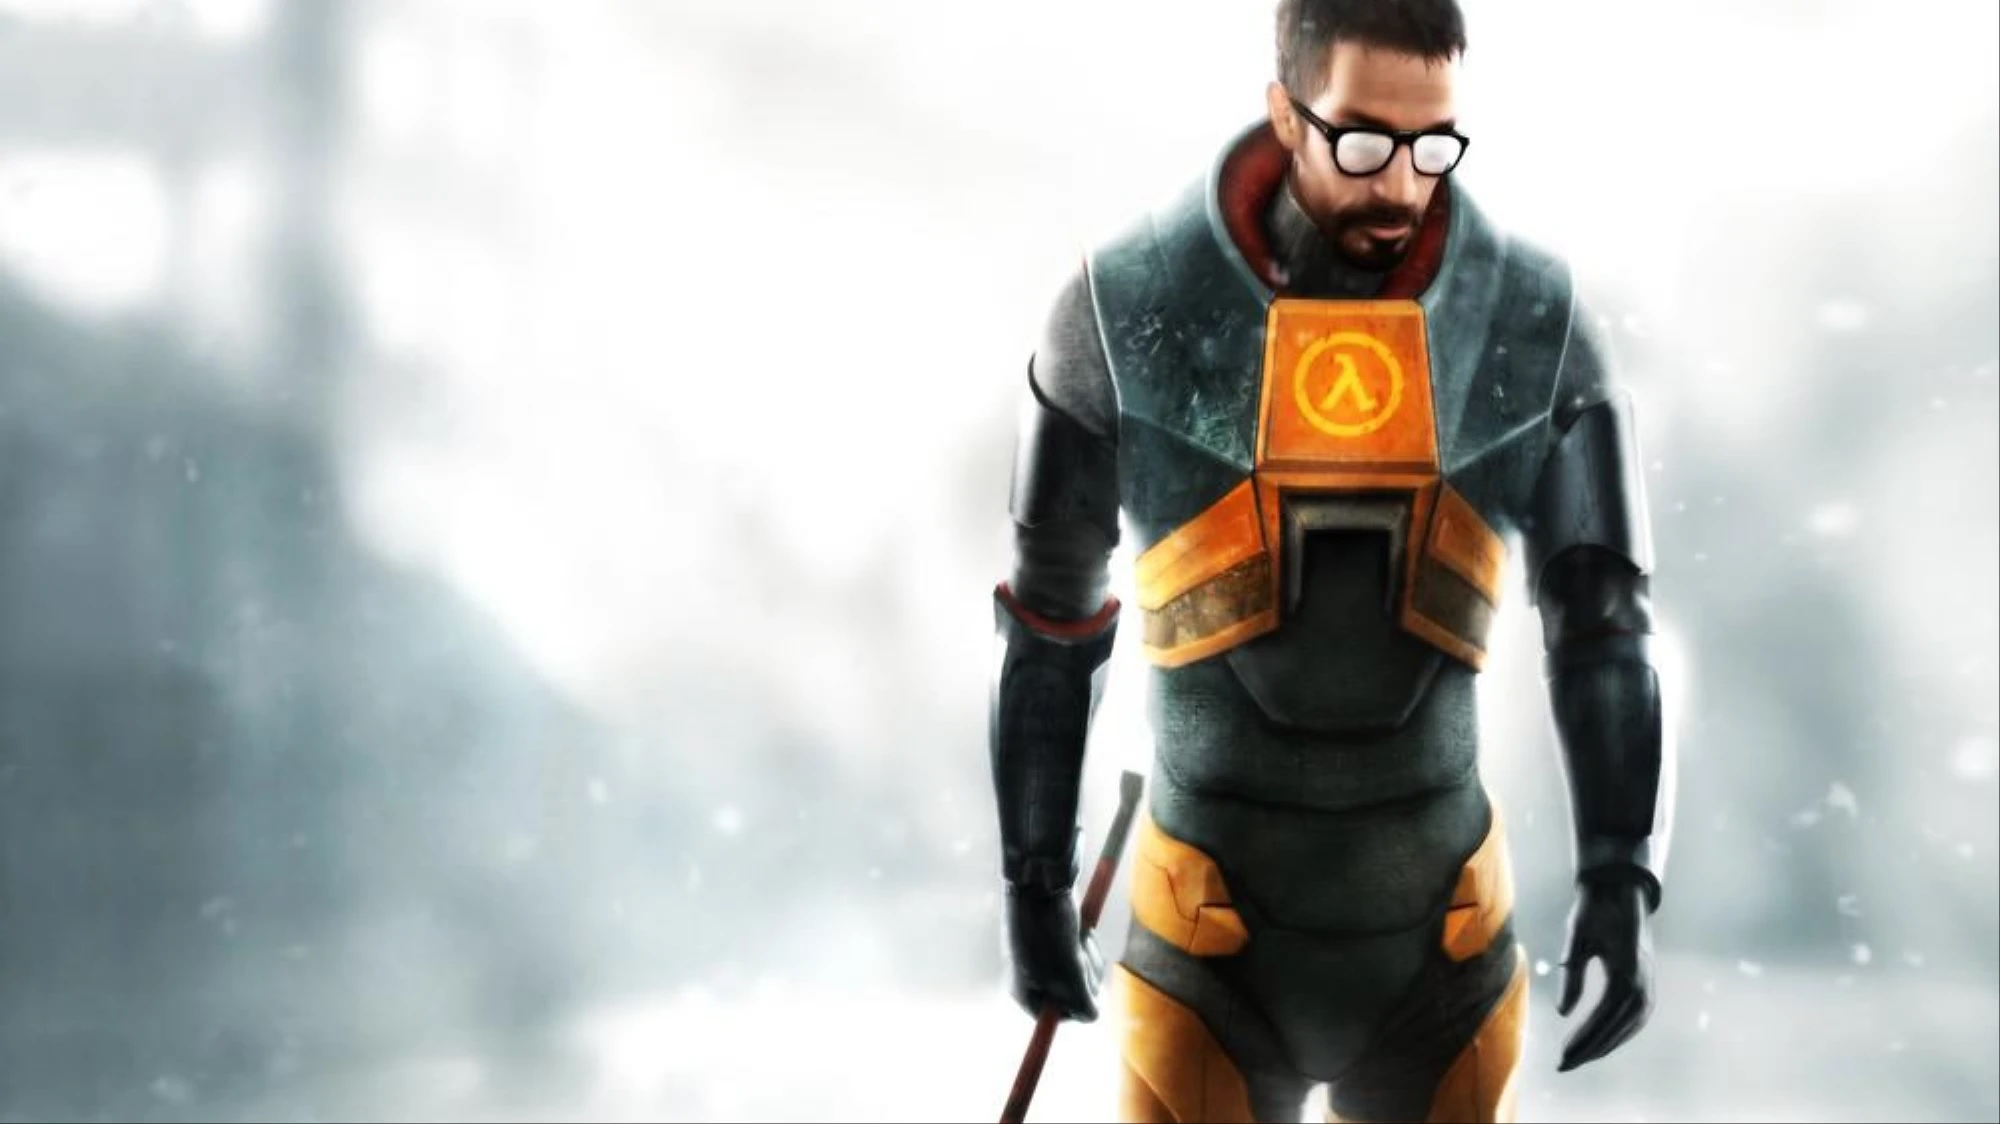 15 years later, Half-Life 2 gets an update